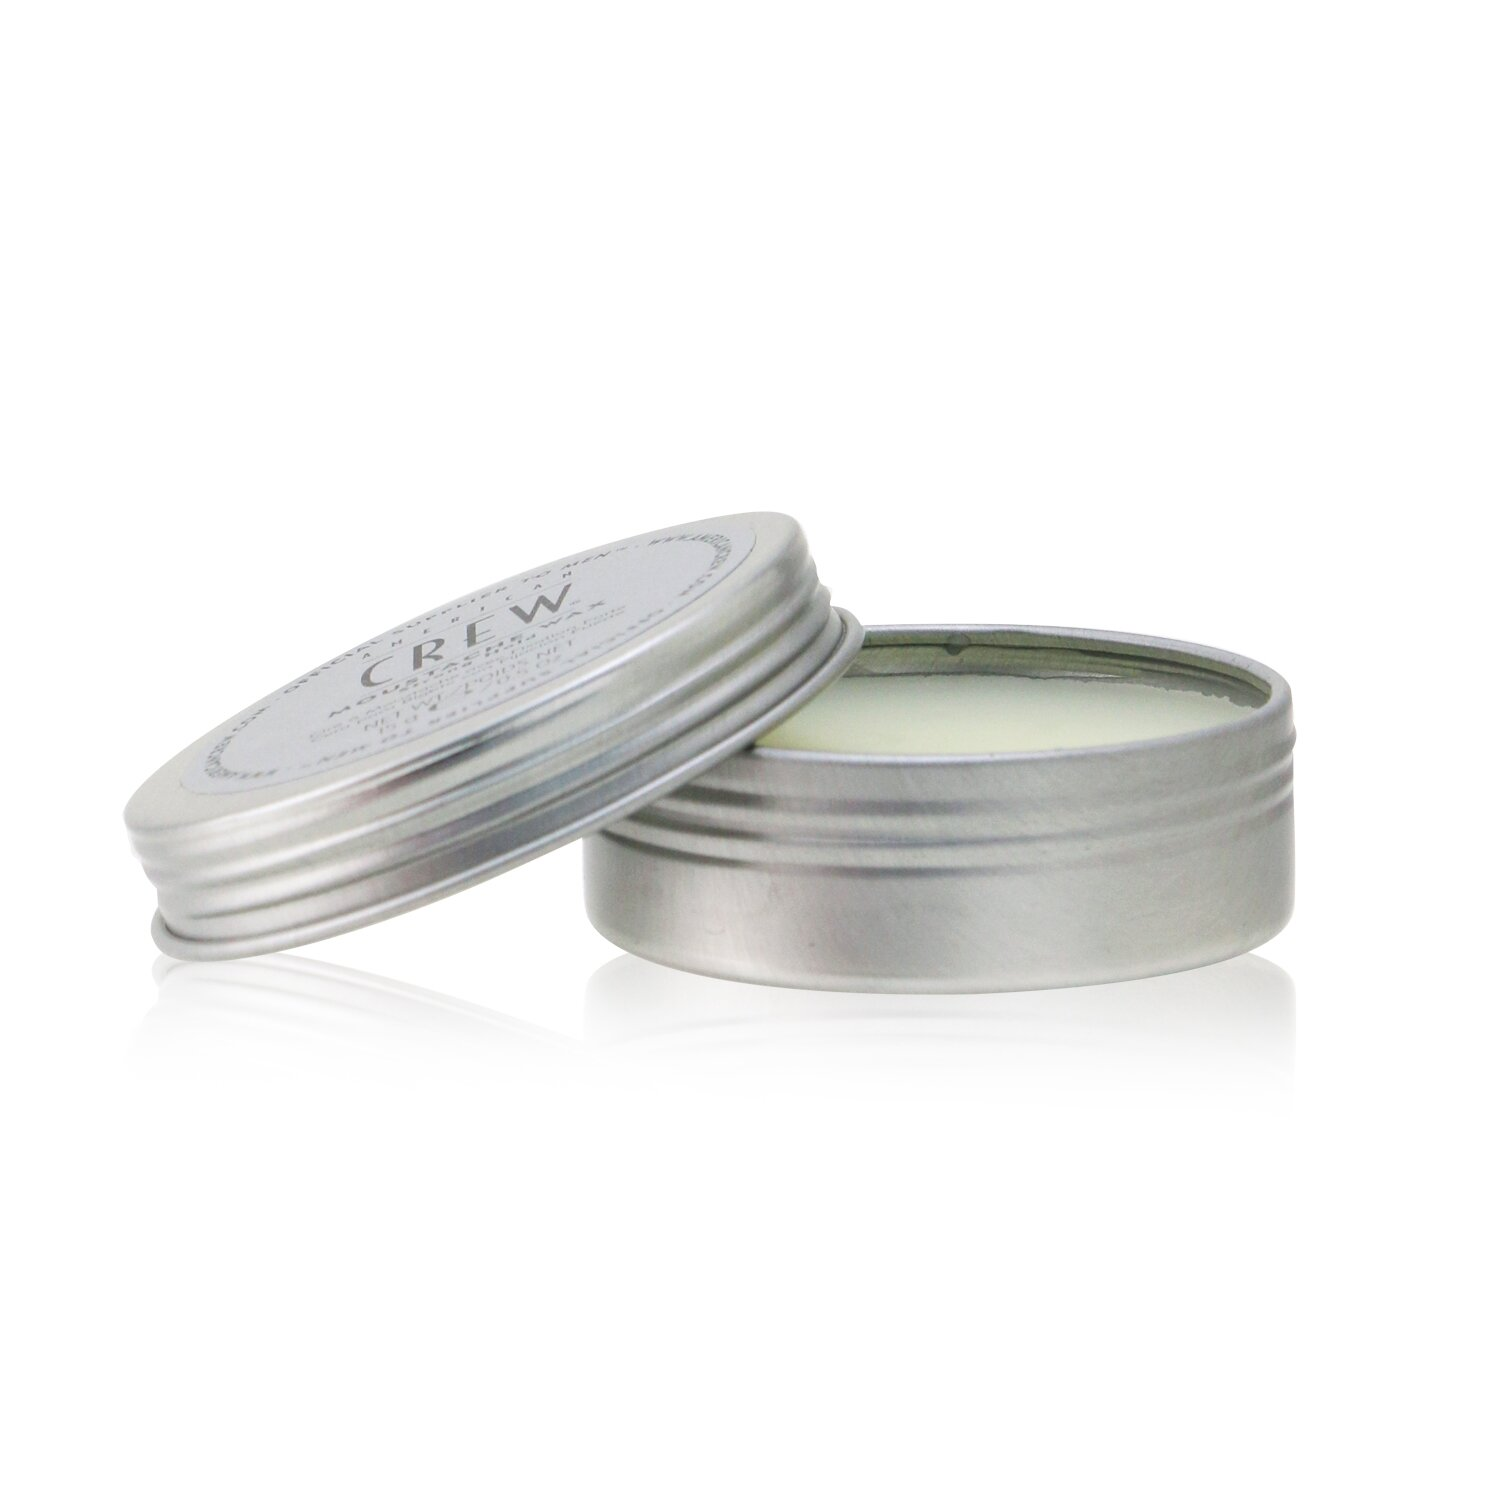 Buy AMERICAN CREW - Moustache Wax - Strong Hold 15g/0.5oz Singapore